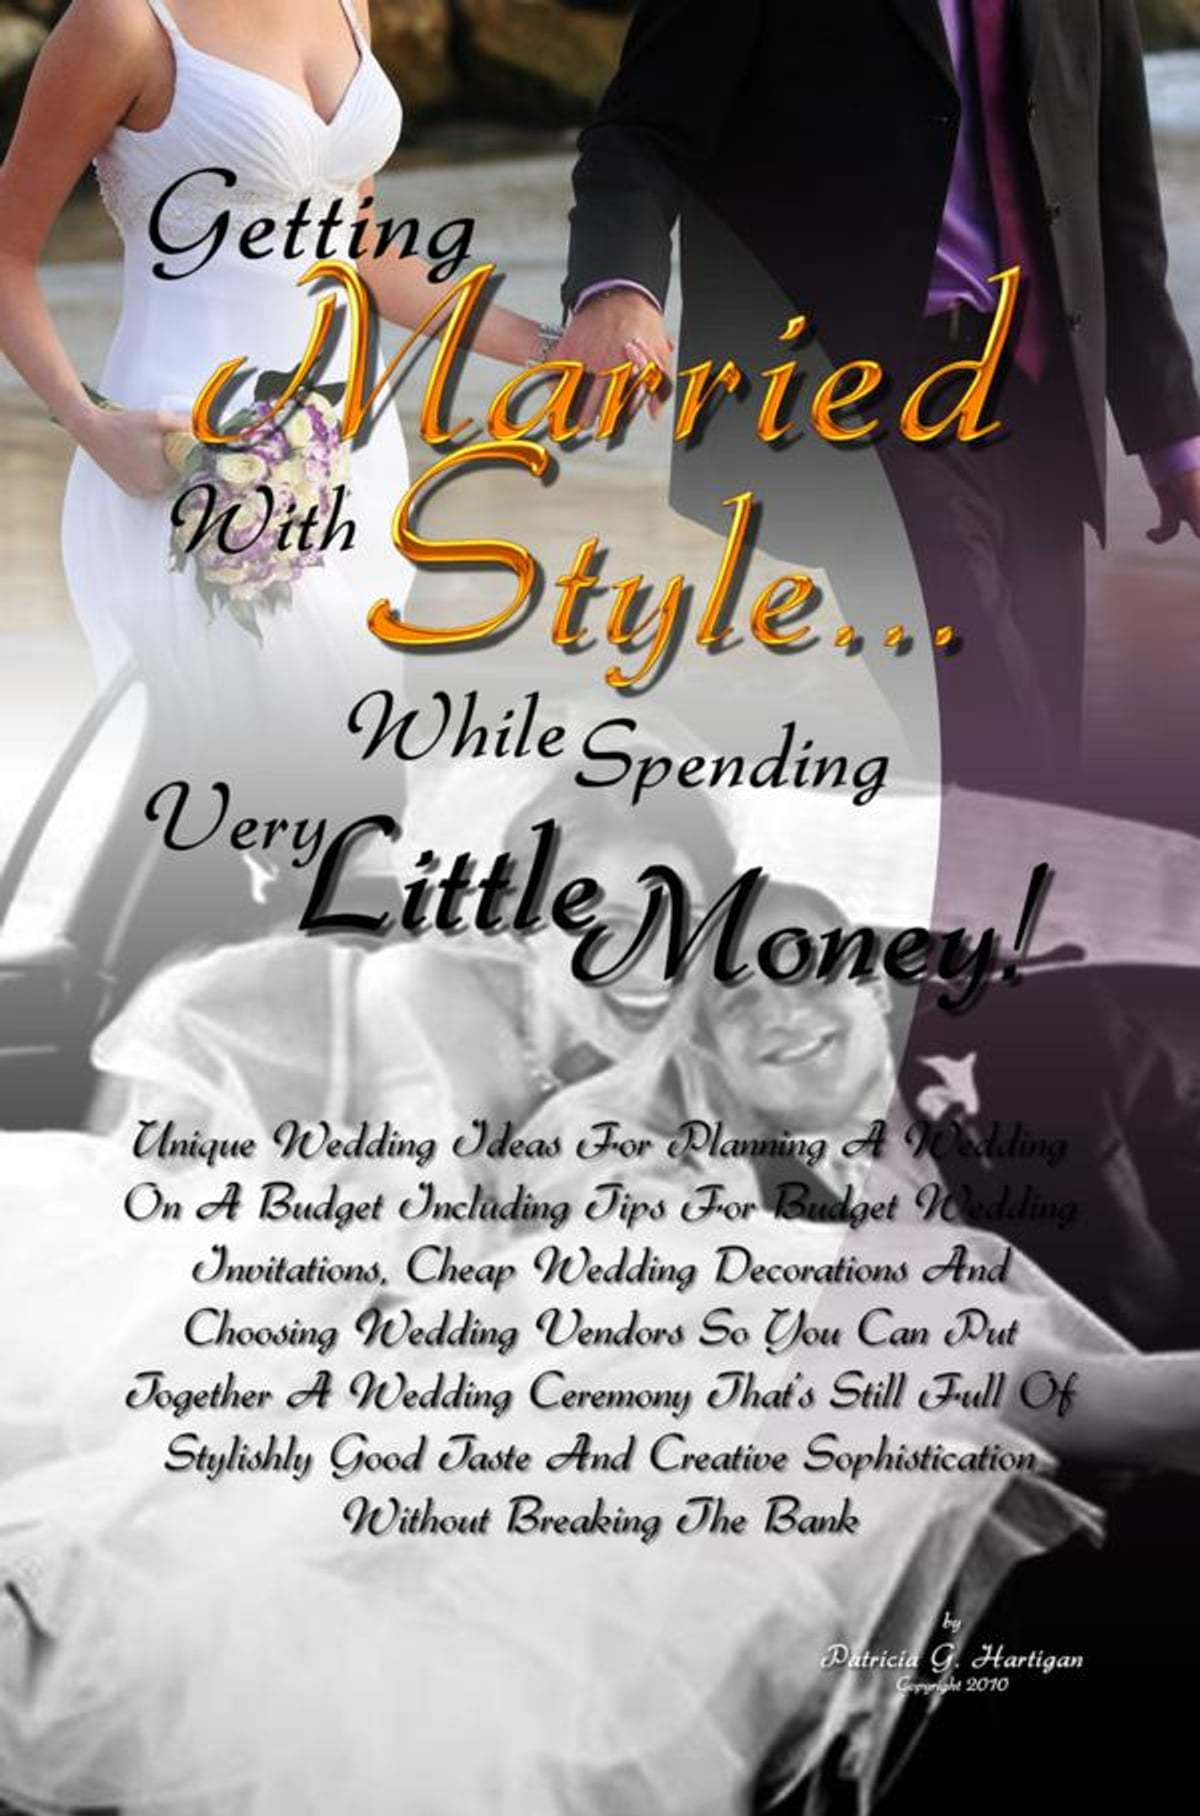 Getting Married With Style While Spending Very Little Money Ebook By Patricia G Hartigan Rakuten Kobo